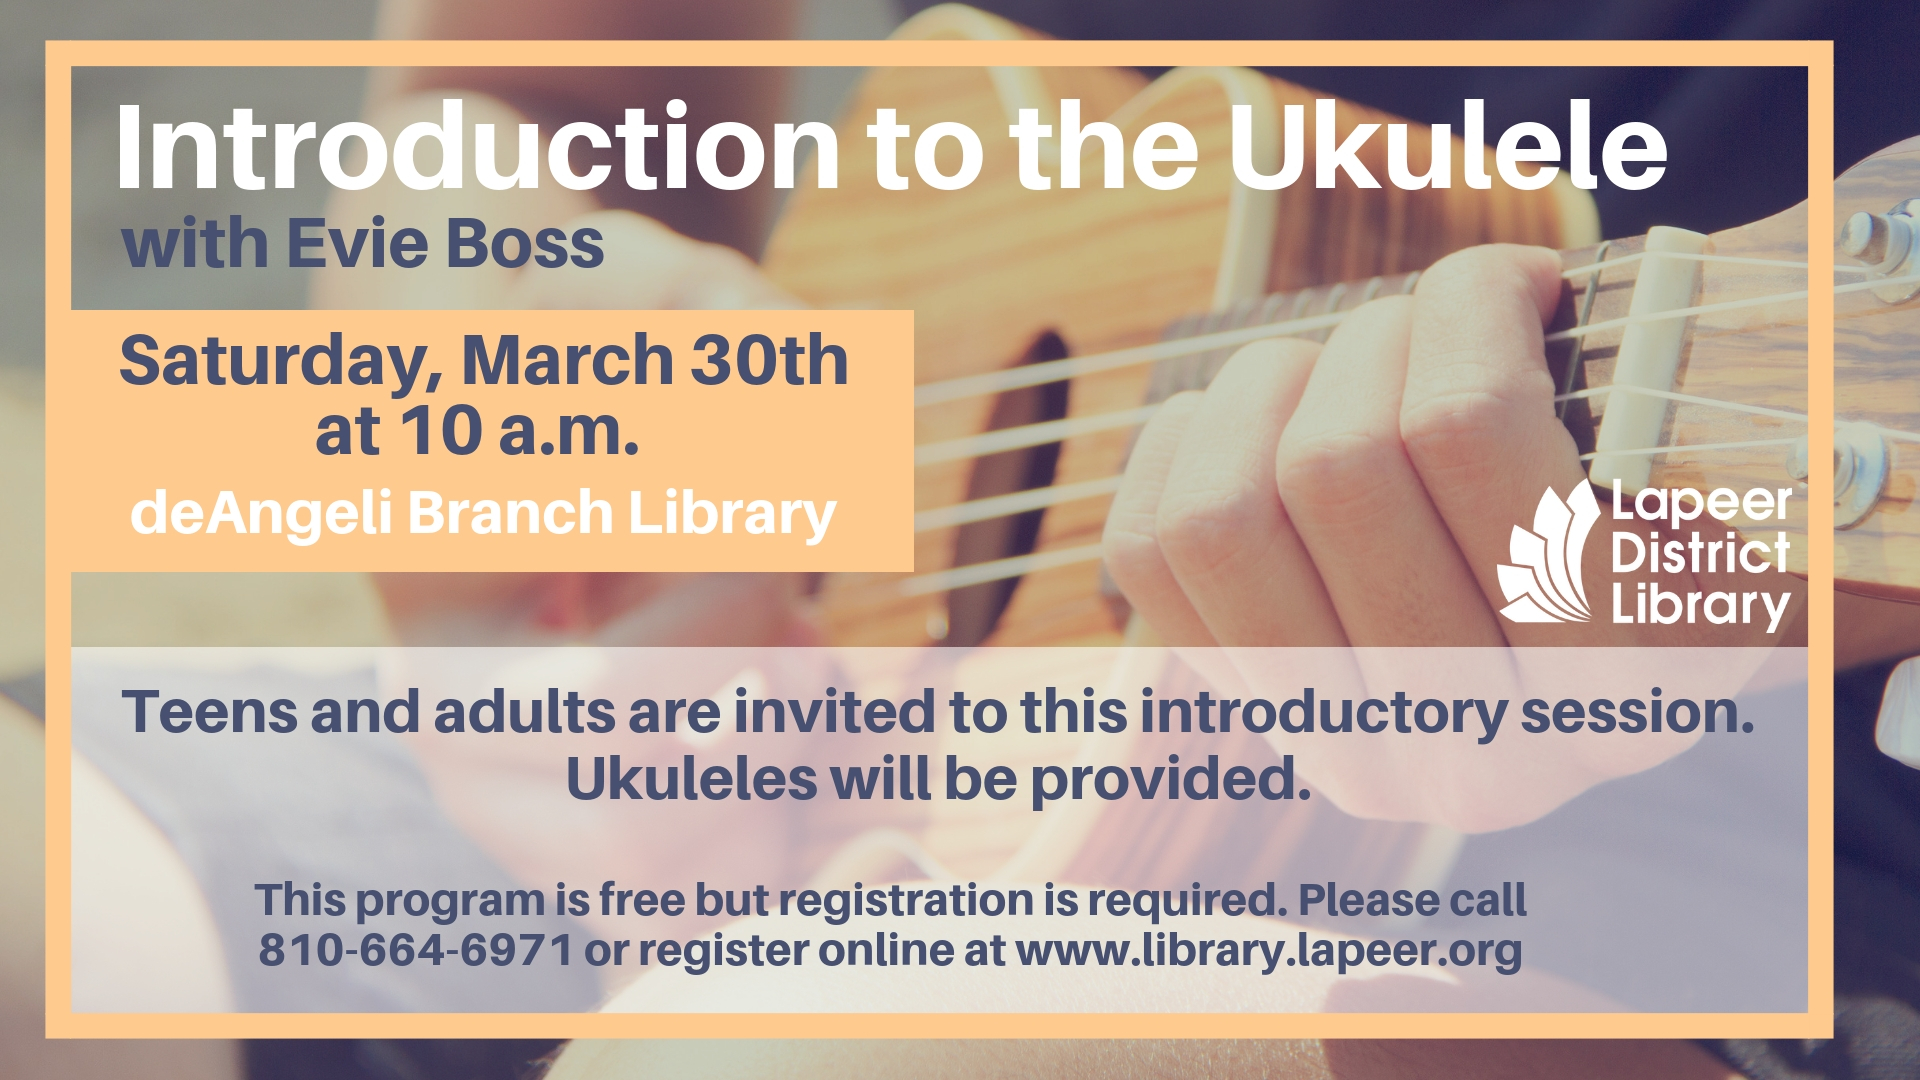 Introduction to the Ukulele with Evie Boss